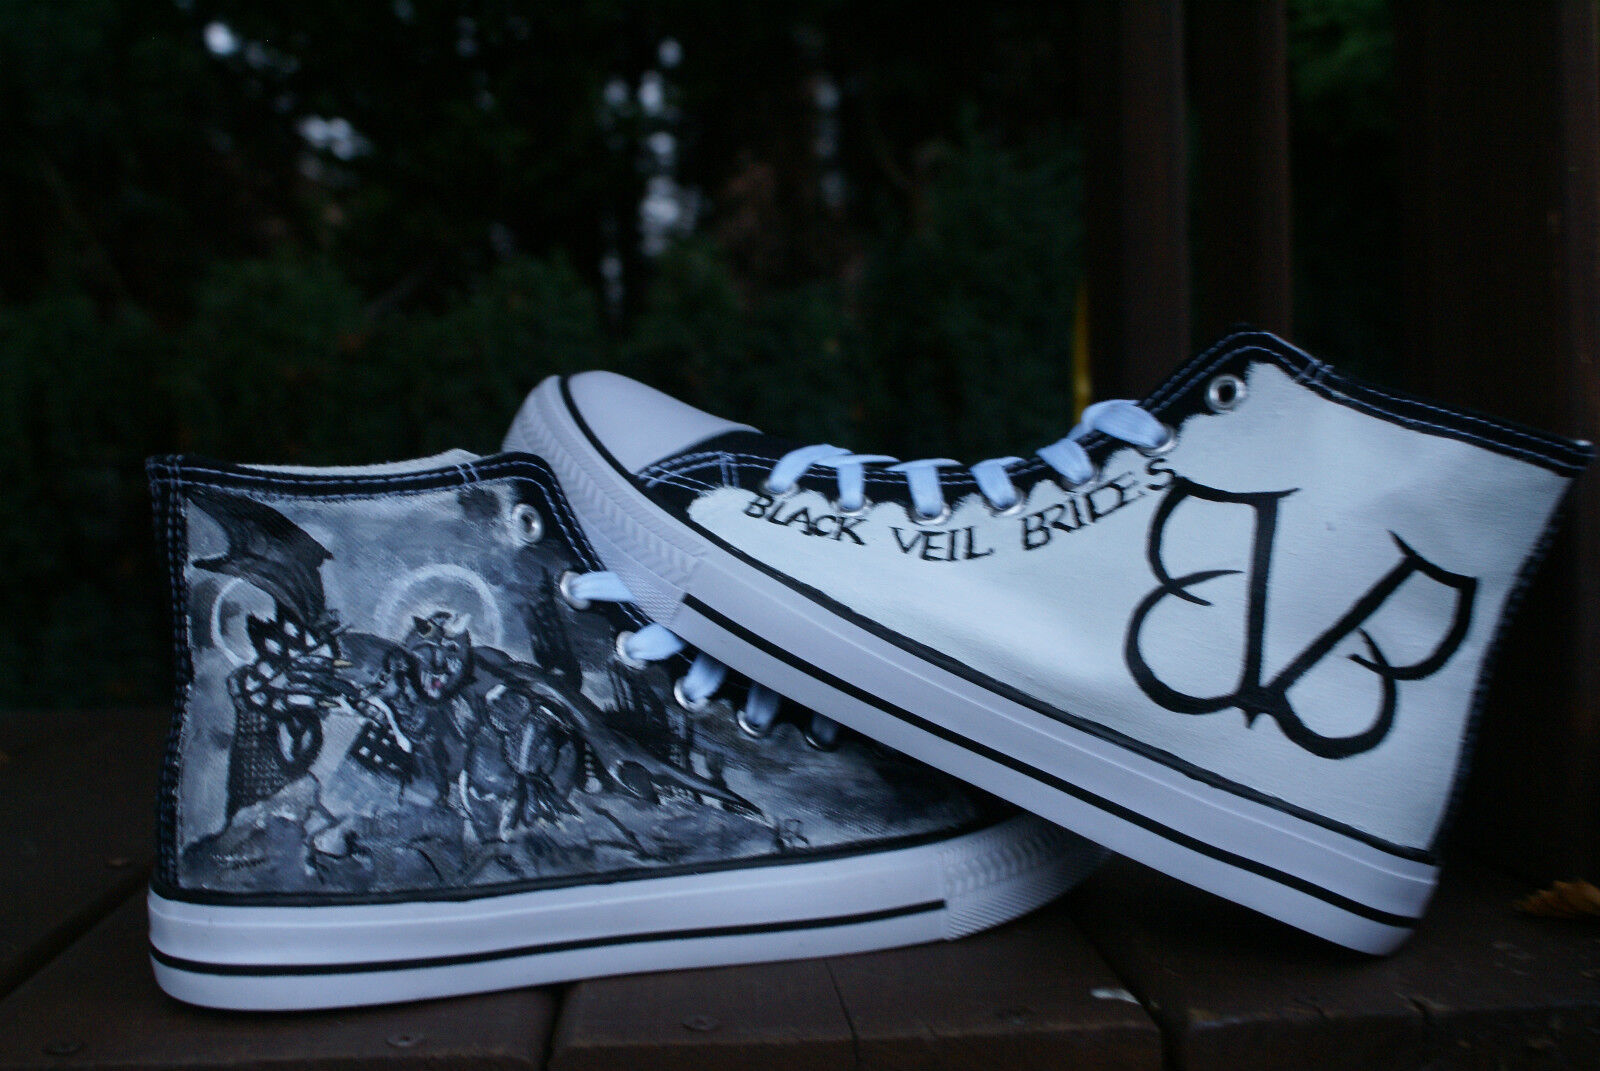 BLACK VEIL BRIDES inspiROTCUSTOM inspiROTCUSTOM BRIDES HAND PAINTED HIGH TOPS MADE TO ORDER 303ffd